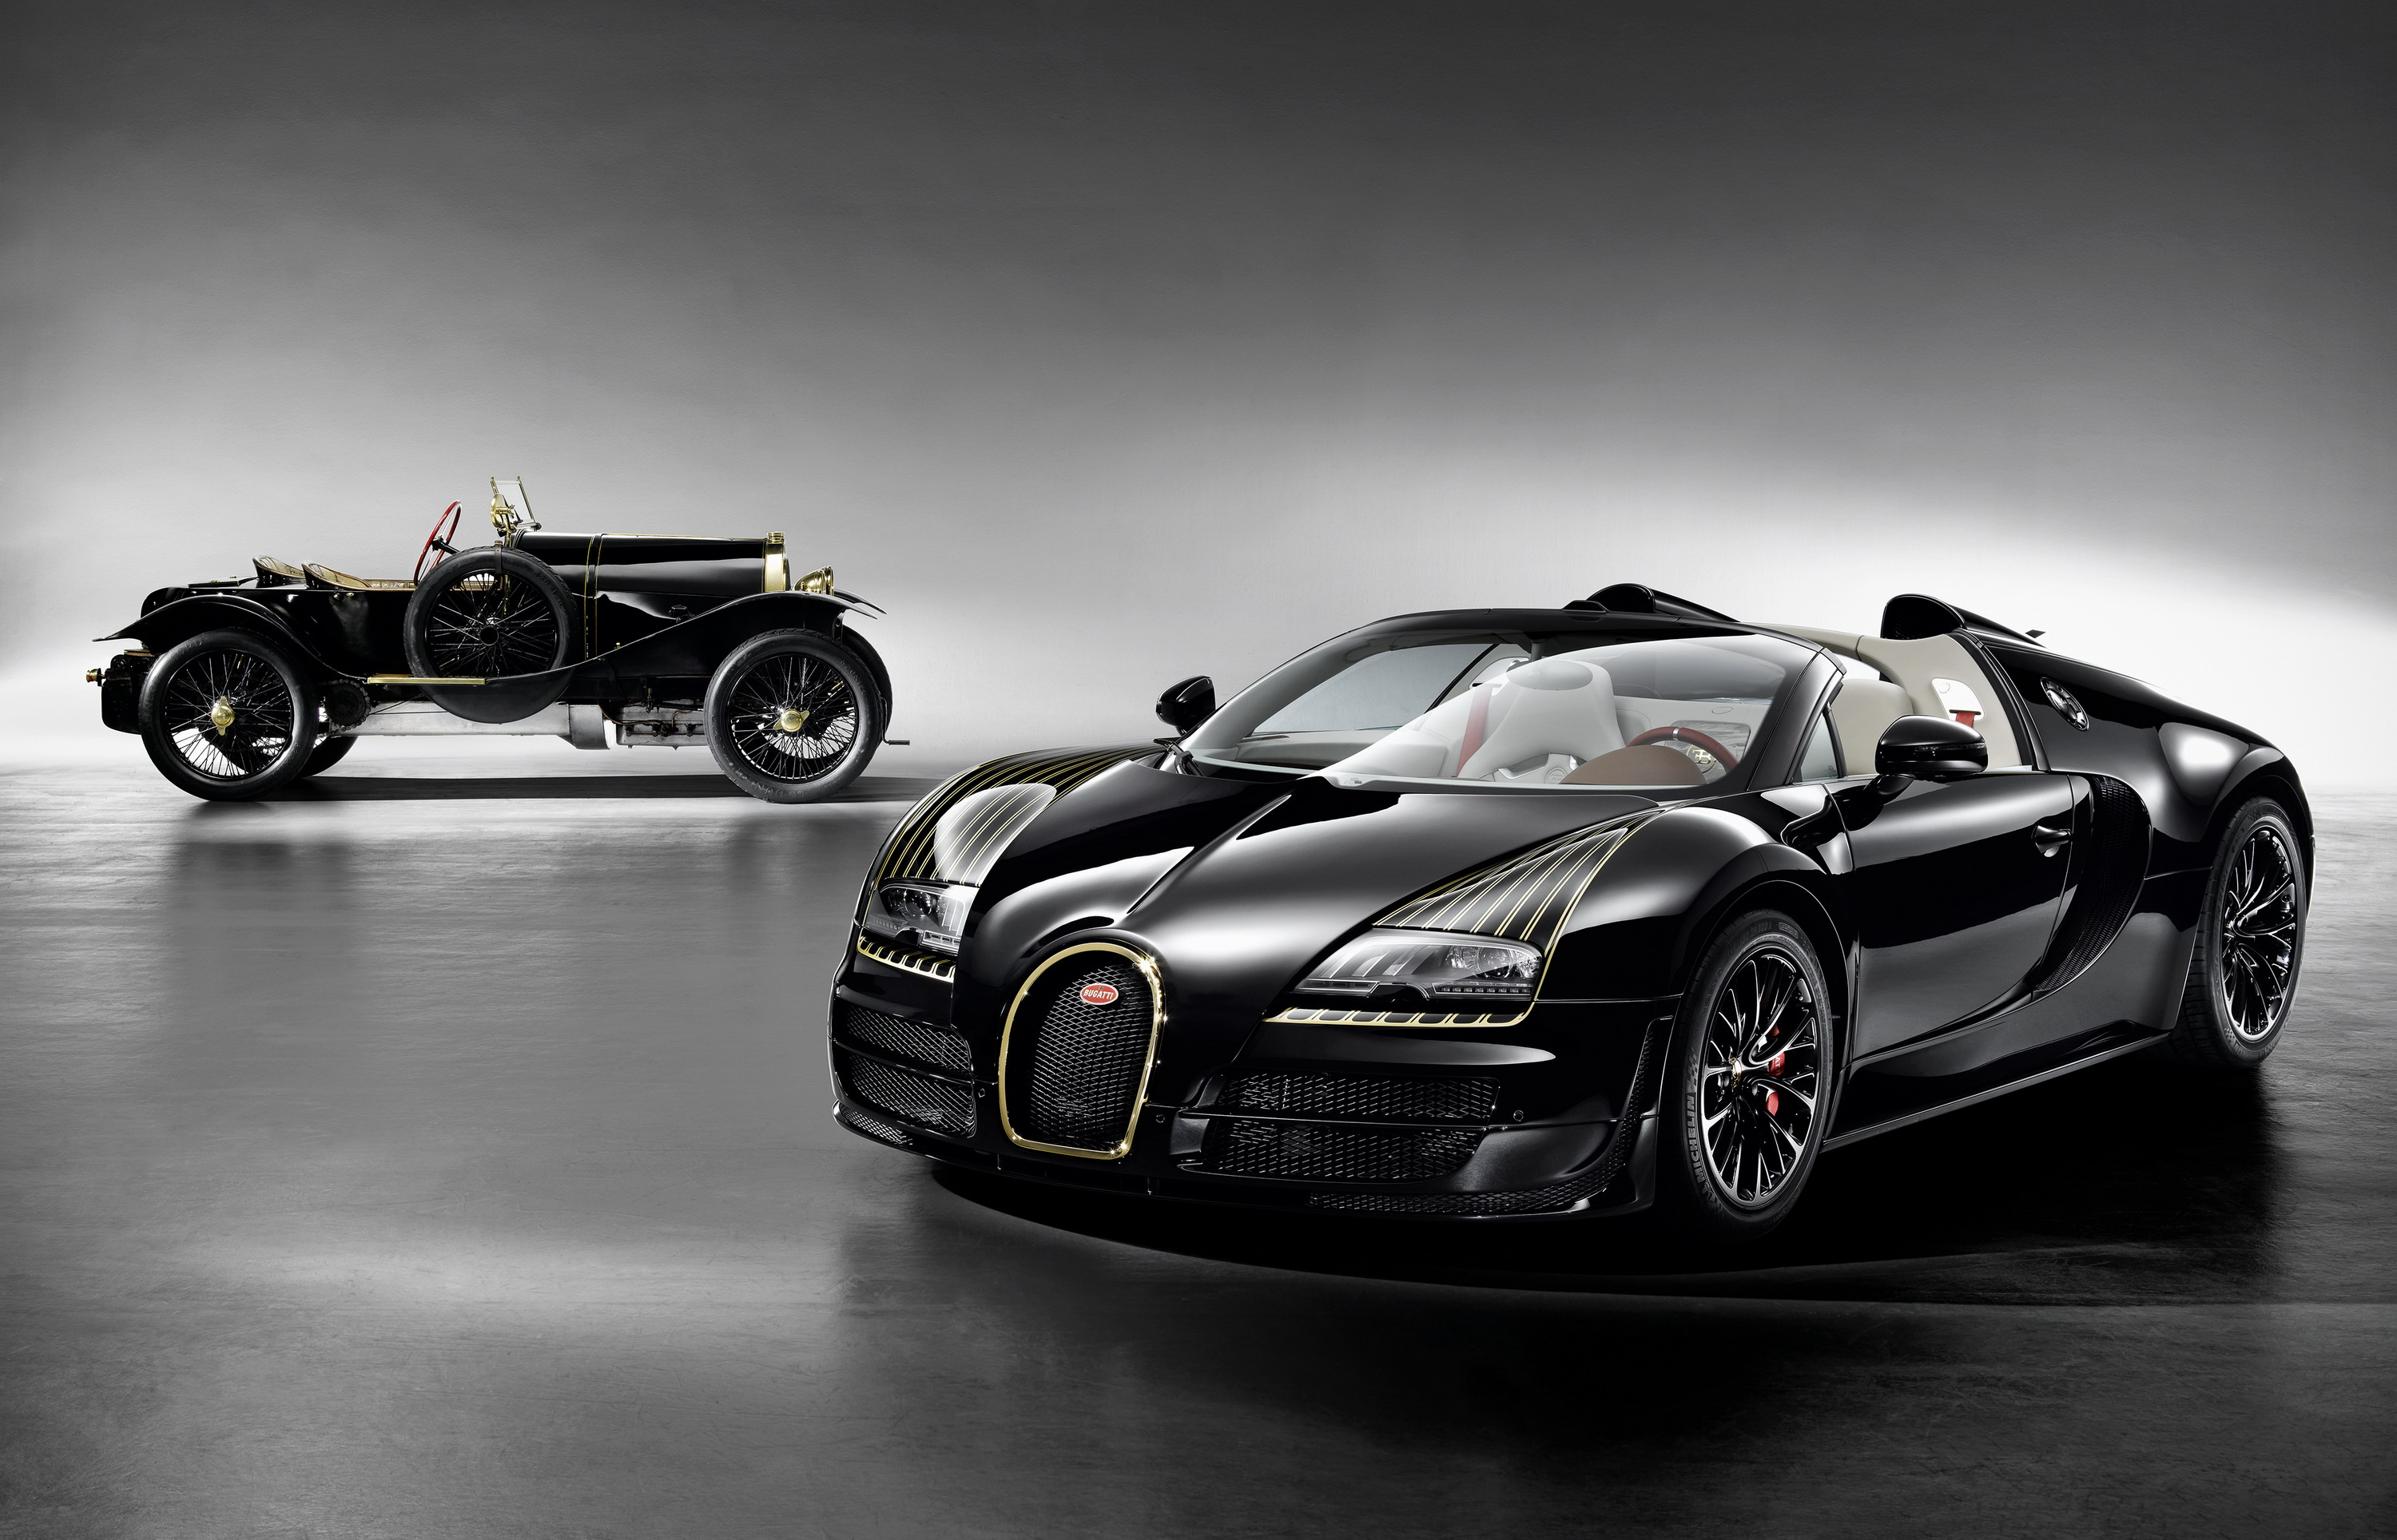 2014 bugatti veyron grand sport vitesse black bess review. Black Bedroom Furniture Sets. Home Design Ideas